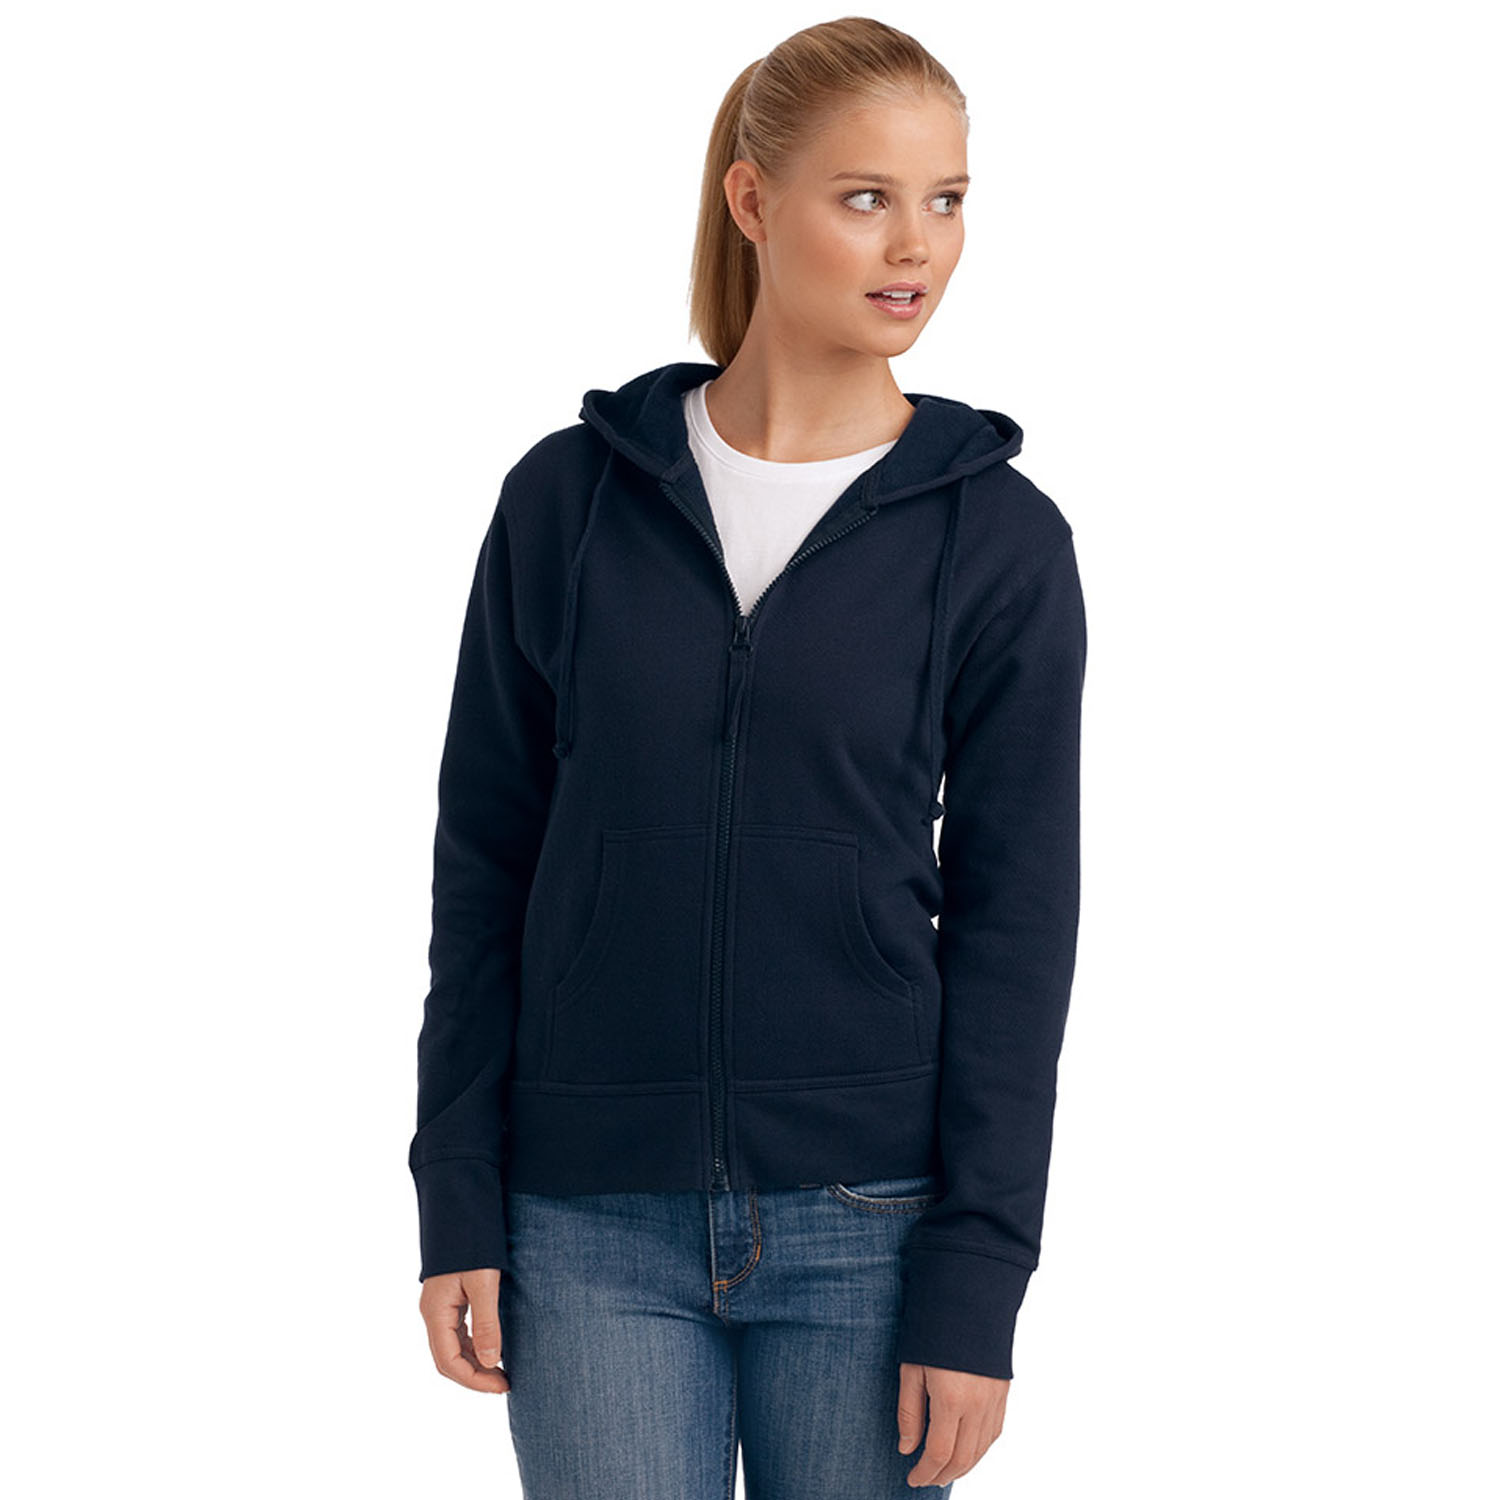 Shop women's sweatshirts & hoodies at Eddie Bauer. % Satisfaction guaranteed. Since